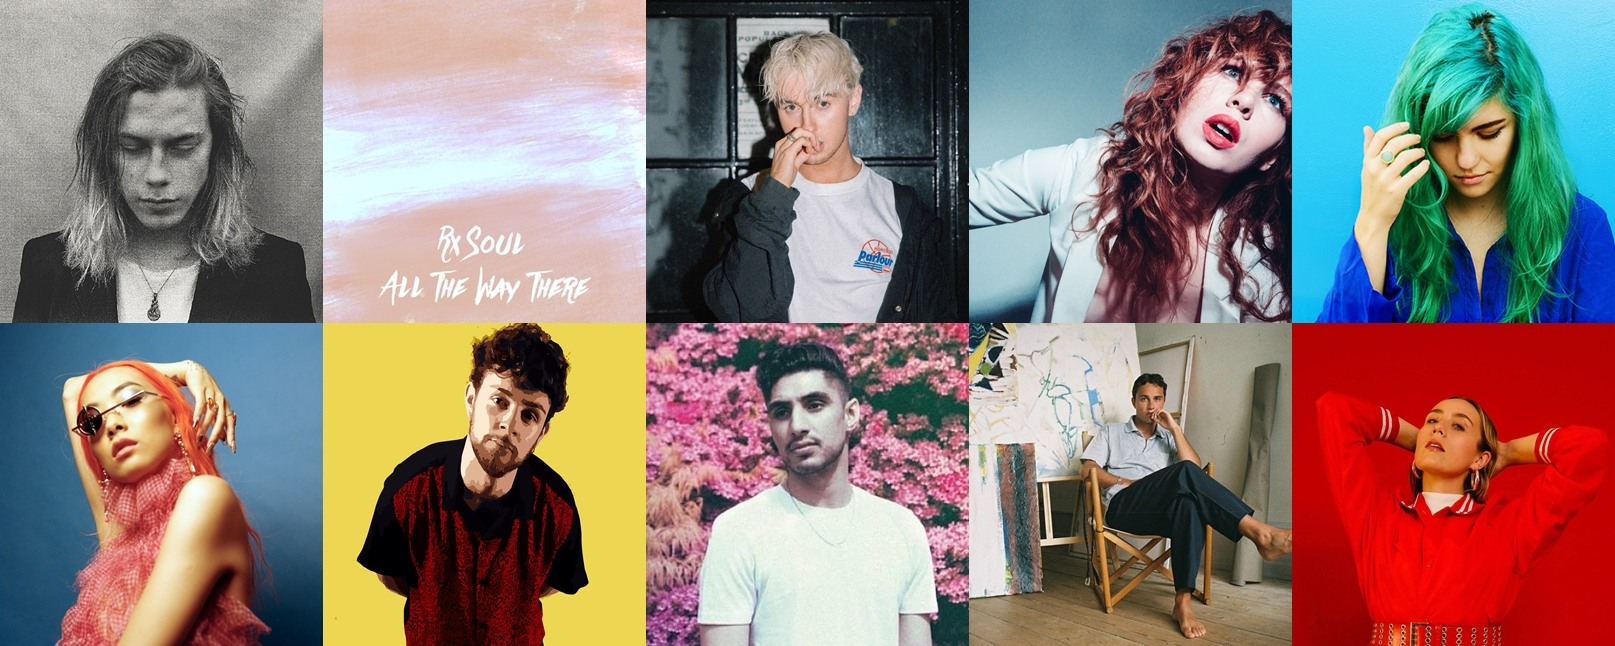 TEN ARTISTS TO WATCH IN 2018